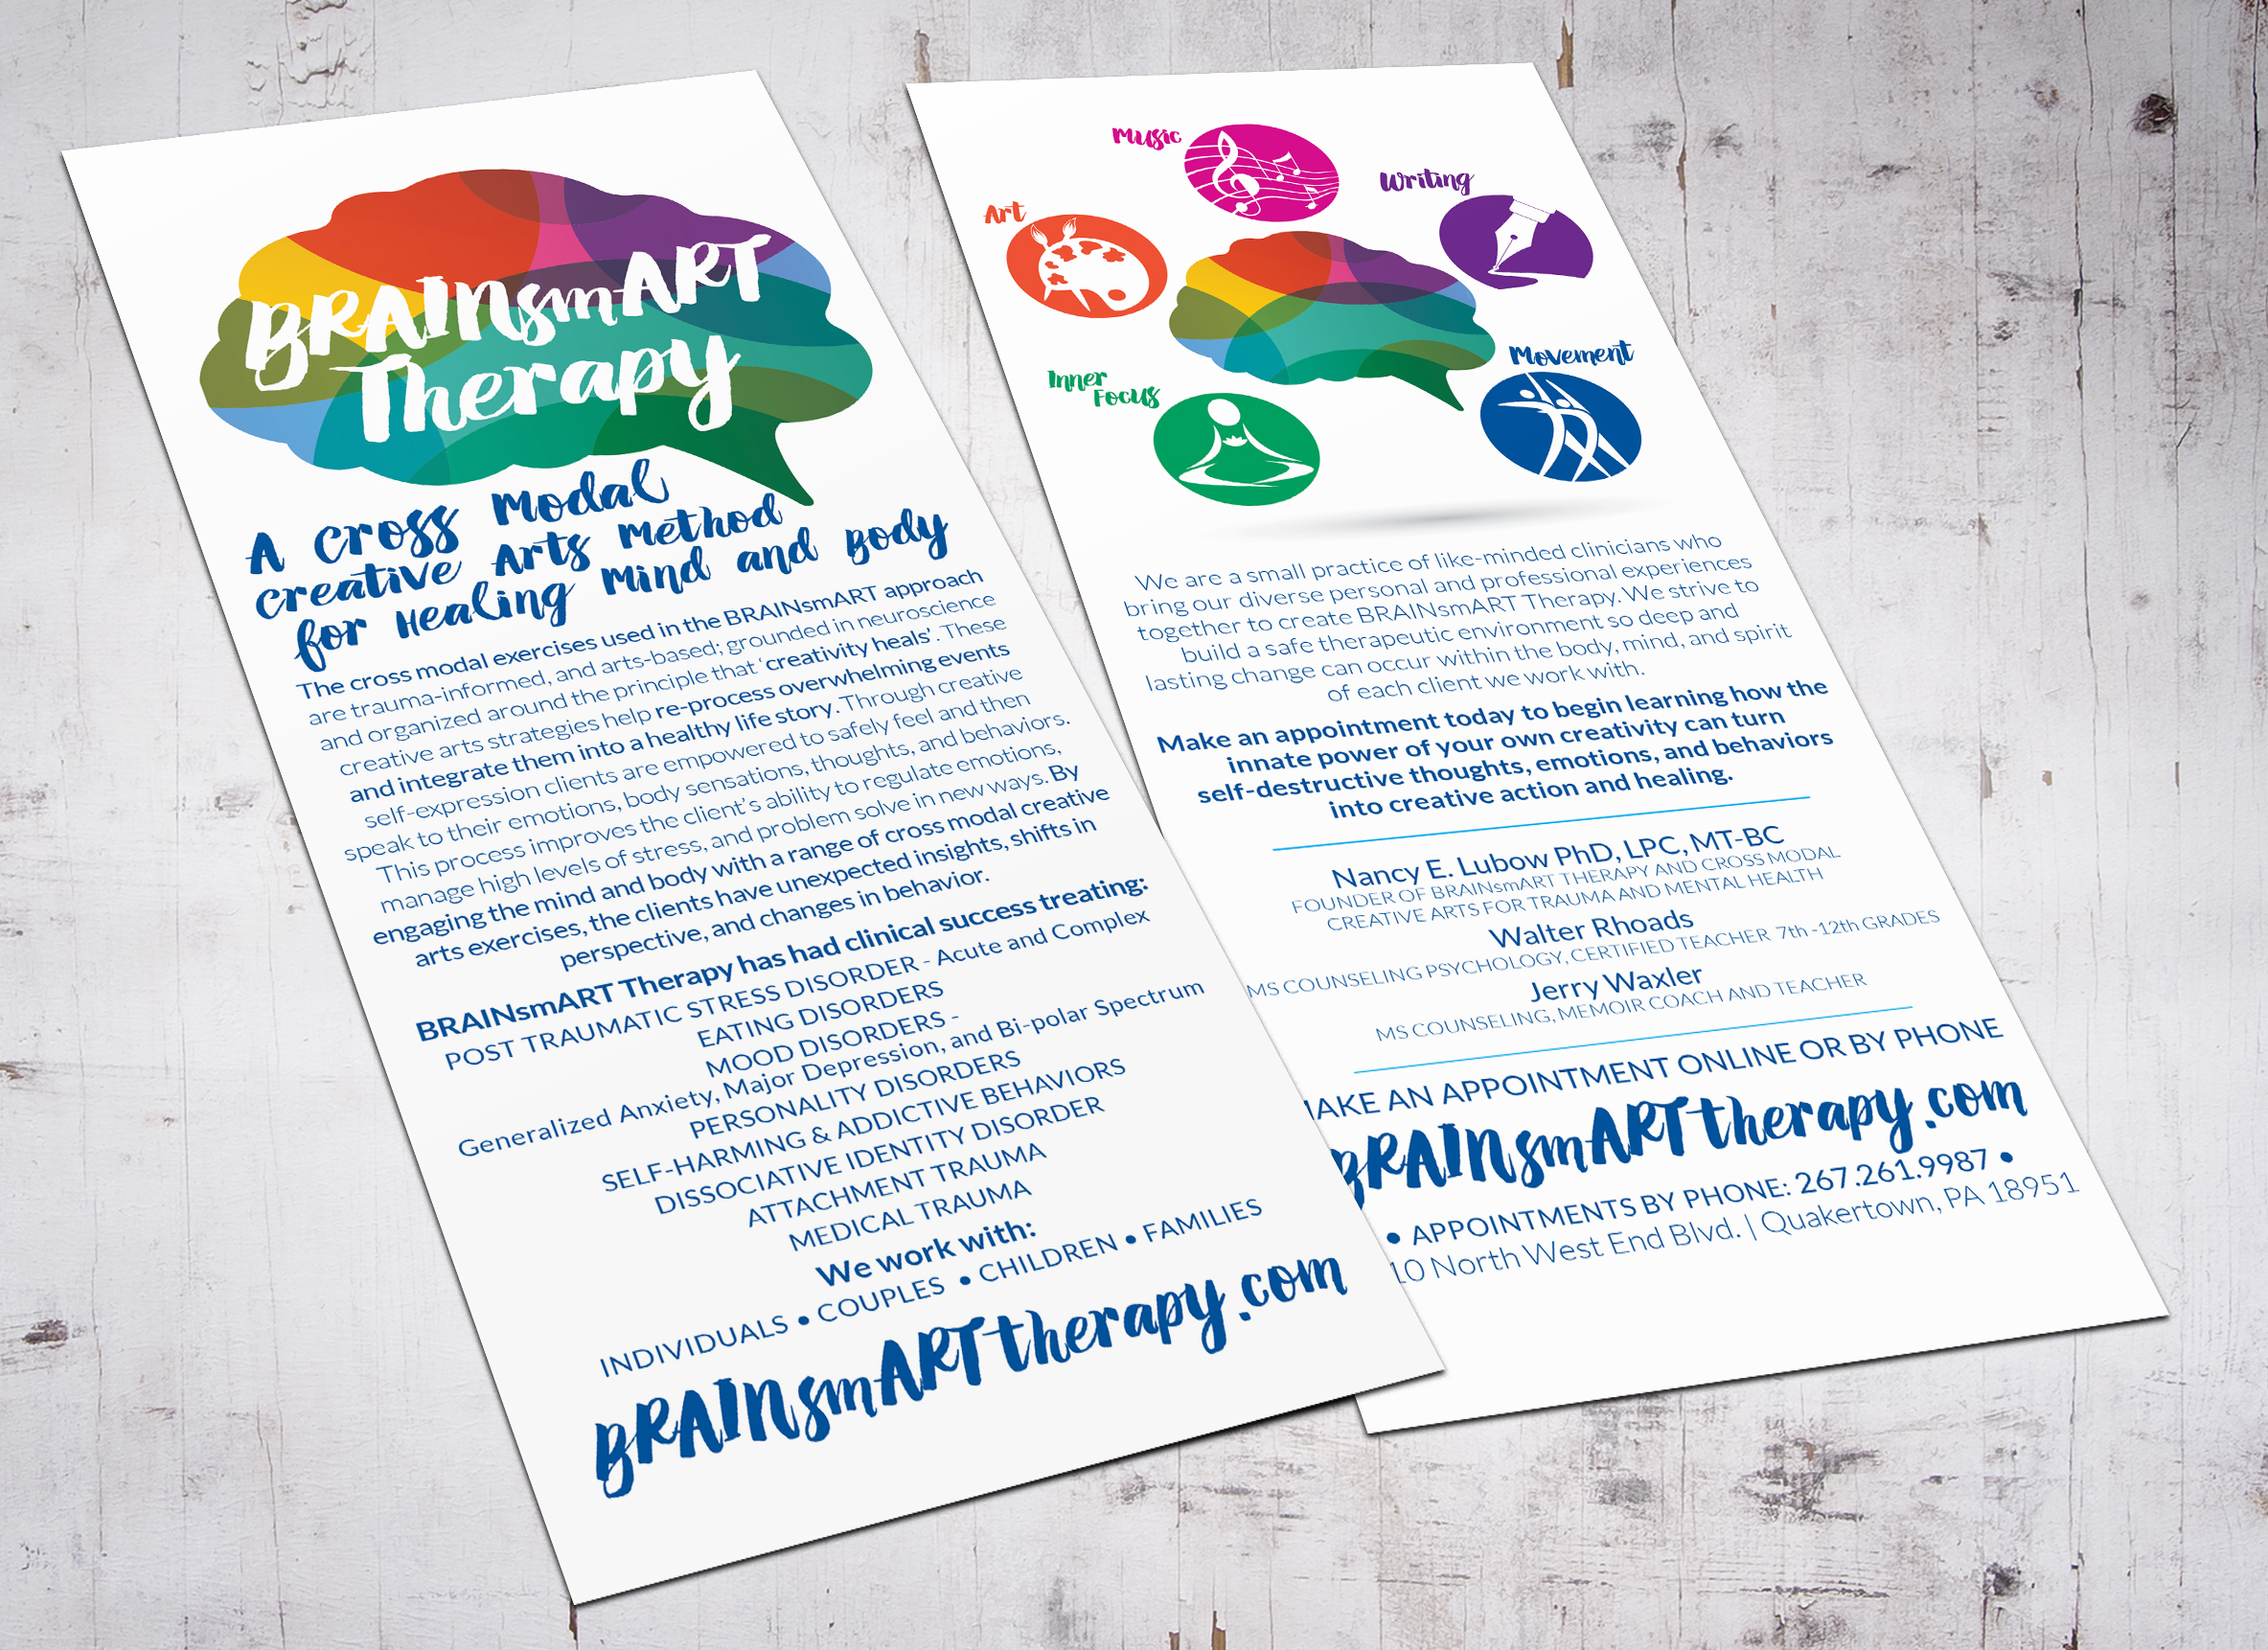 BRAINSMART THERAPY • 4 x 9 RACKCARDS  The copy used on the cards was rewritten to better market the therapy practice and convey an accurate sense of what the BRAINsmART therapy method was all about.